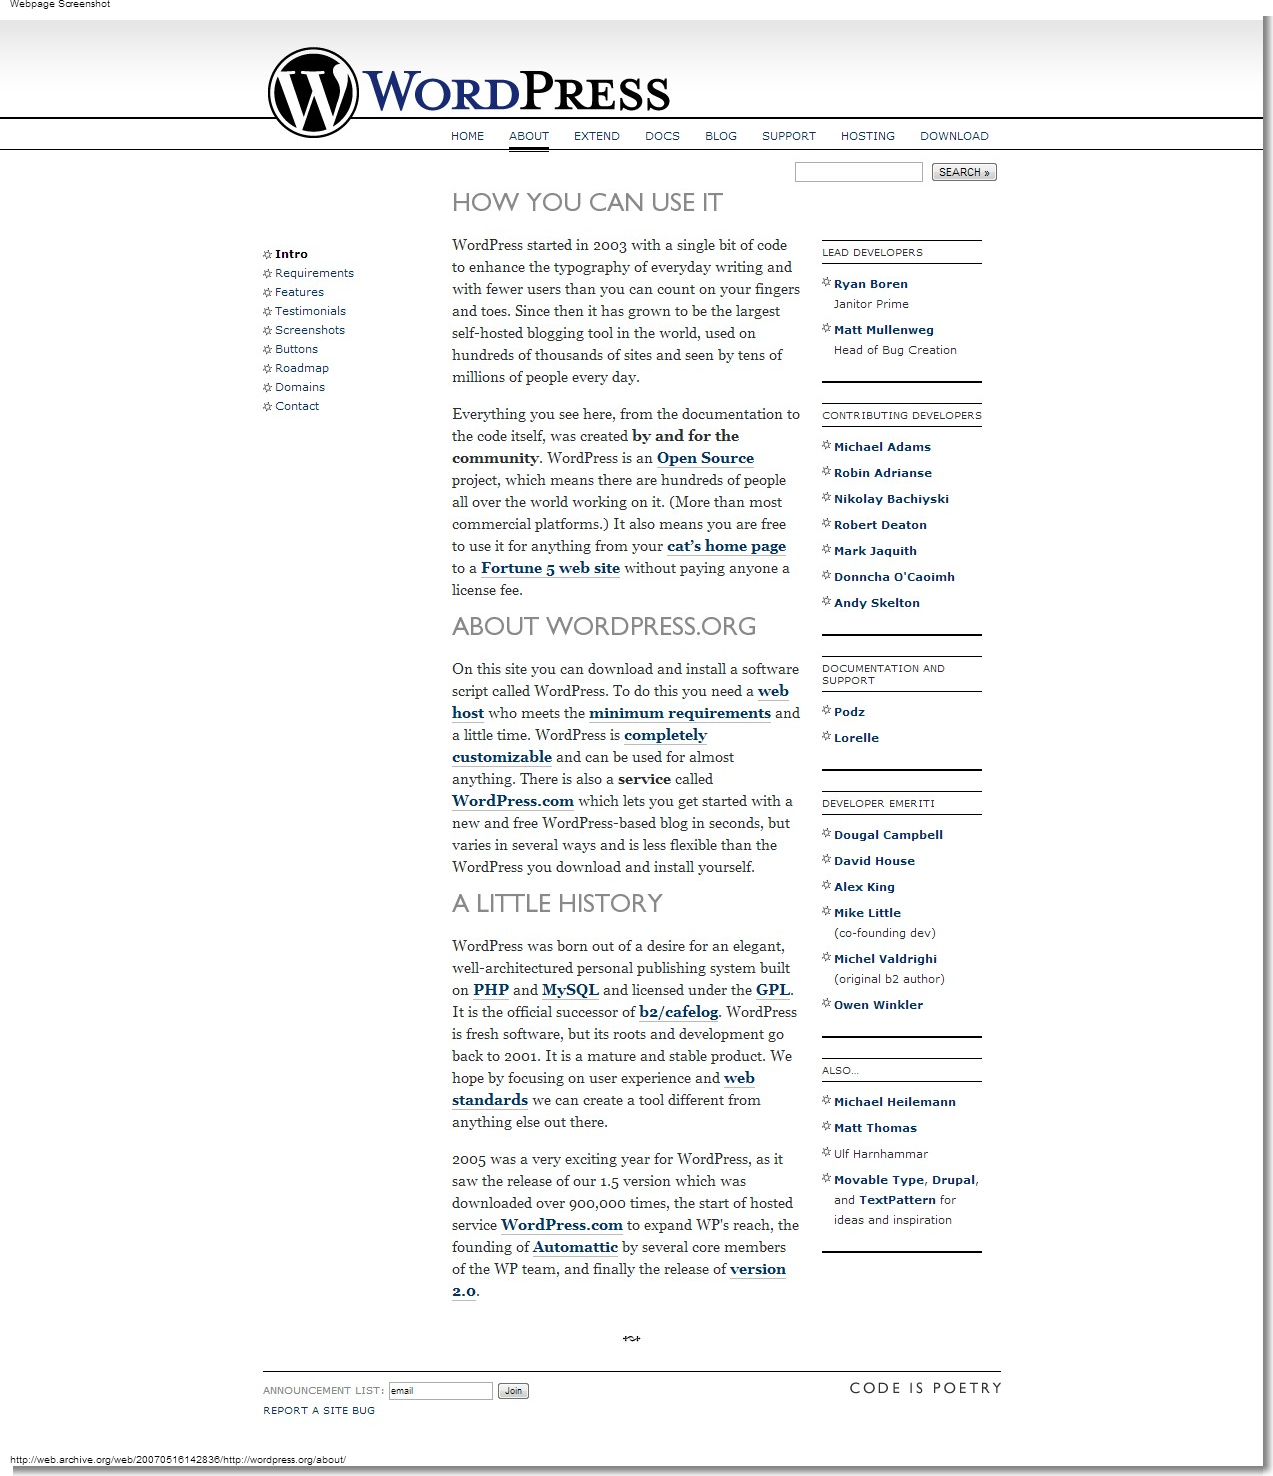 May 16, 2007 - WordPress - About